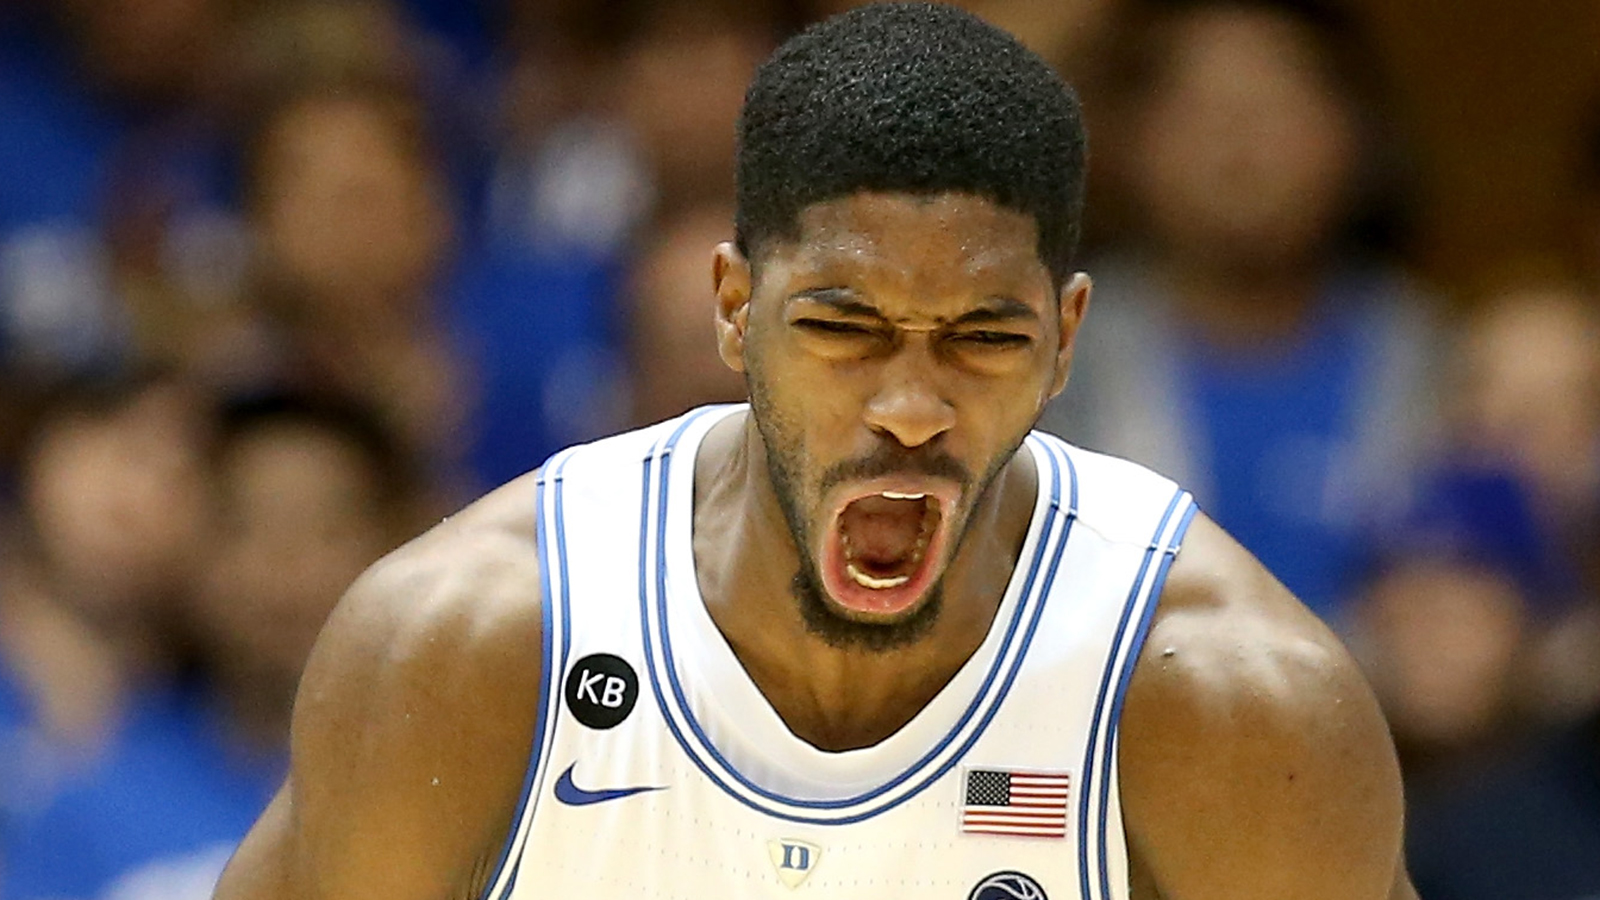 DURHAM, NC - DECEMBER 19:  Amile Jefferson #21 of the Duke Blue Devils reacts after a play against the Tennessee State Tigers during their game at Cameron Indoor Stadium on December 19, 2016 in Durham, North Carolina.  (Photo by Streeter Lecka/Getty Images)